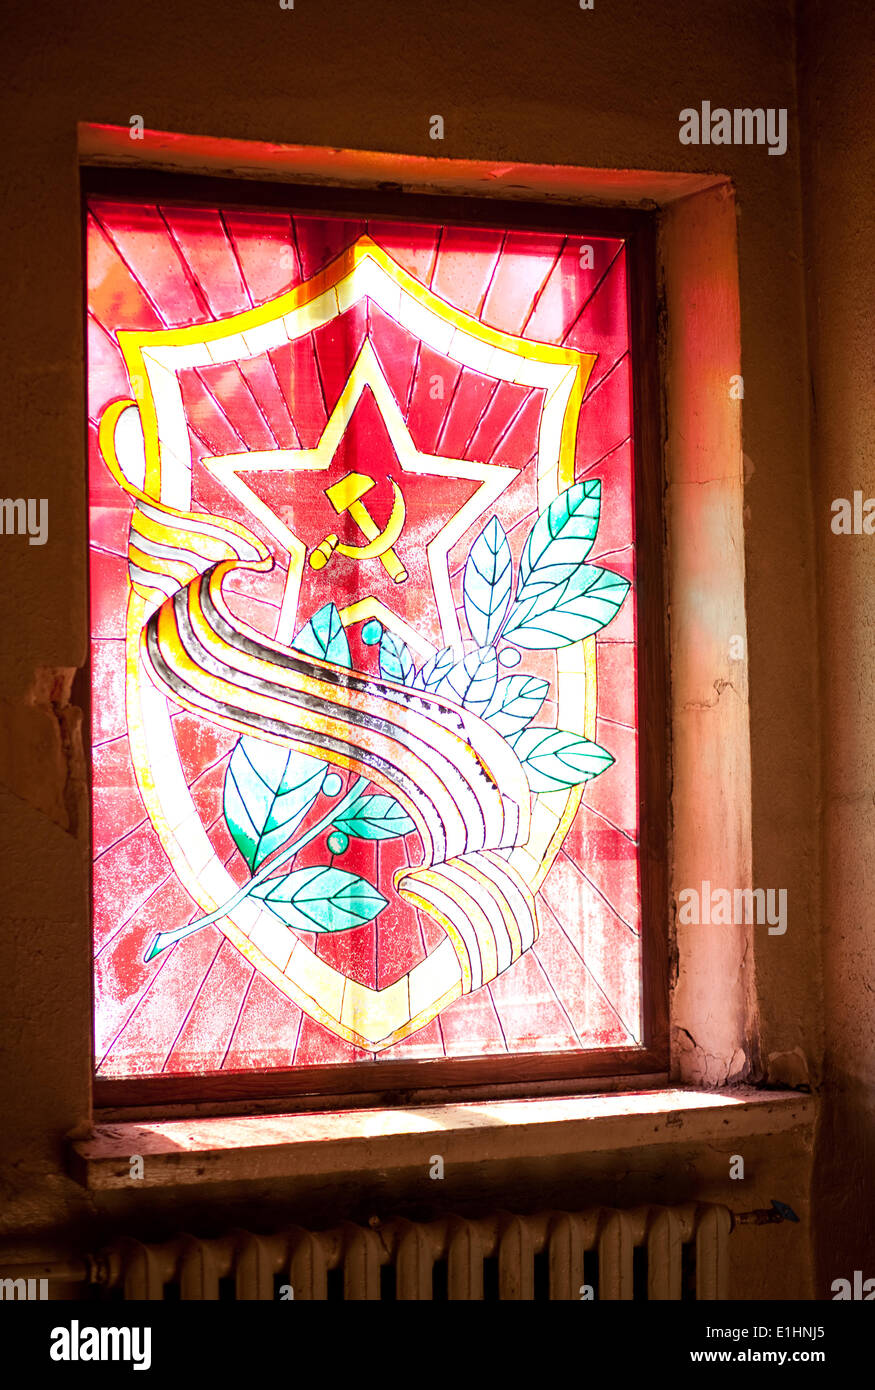 Red star, hammer and sickle, laurel wreath and sabers (swords). Heraldic composition - Stock Image